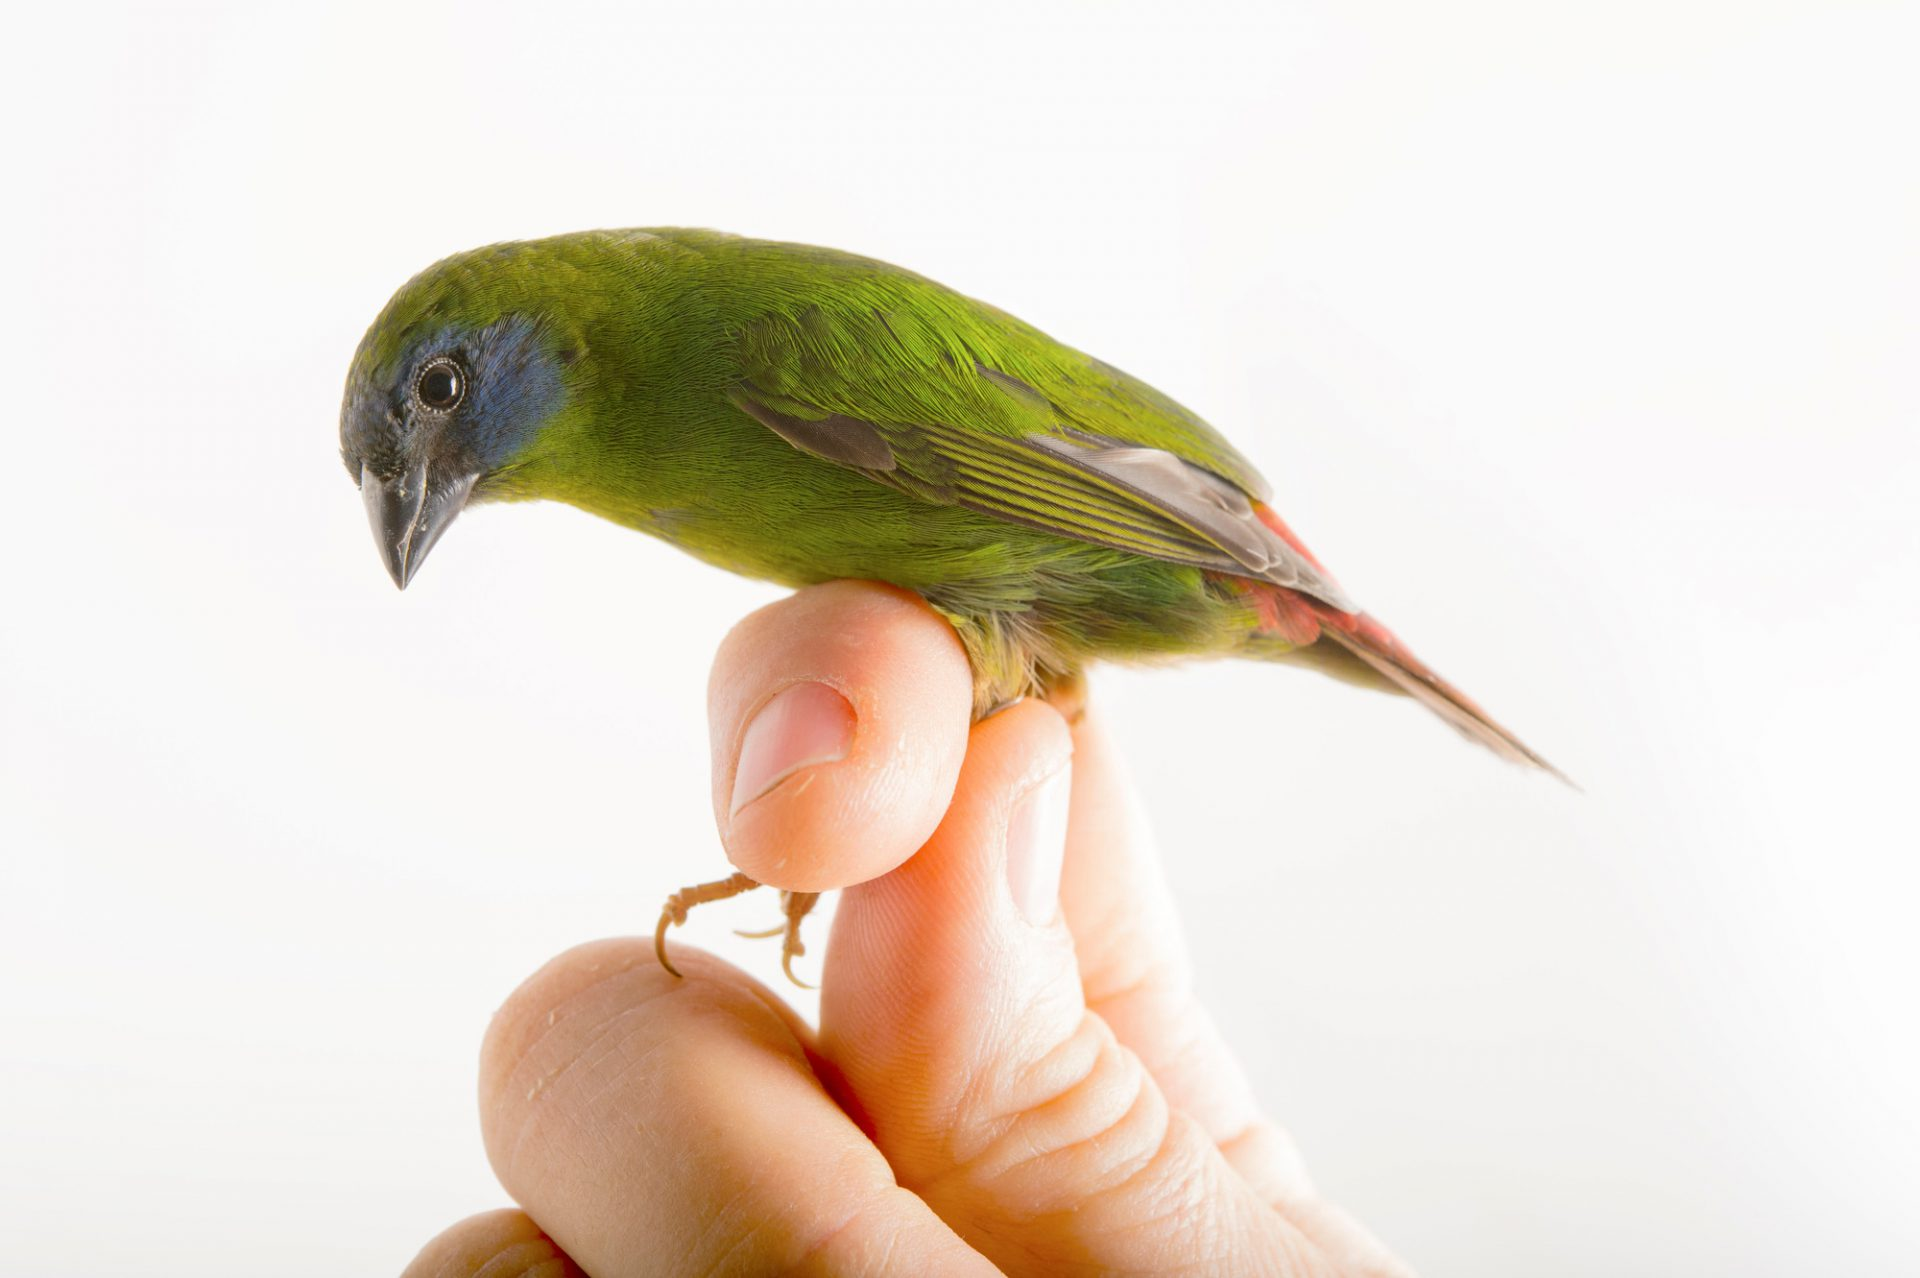 Picture of a blue-faced parrotfinch (Erythrura trichroa) from a private collection.